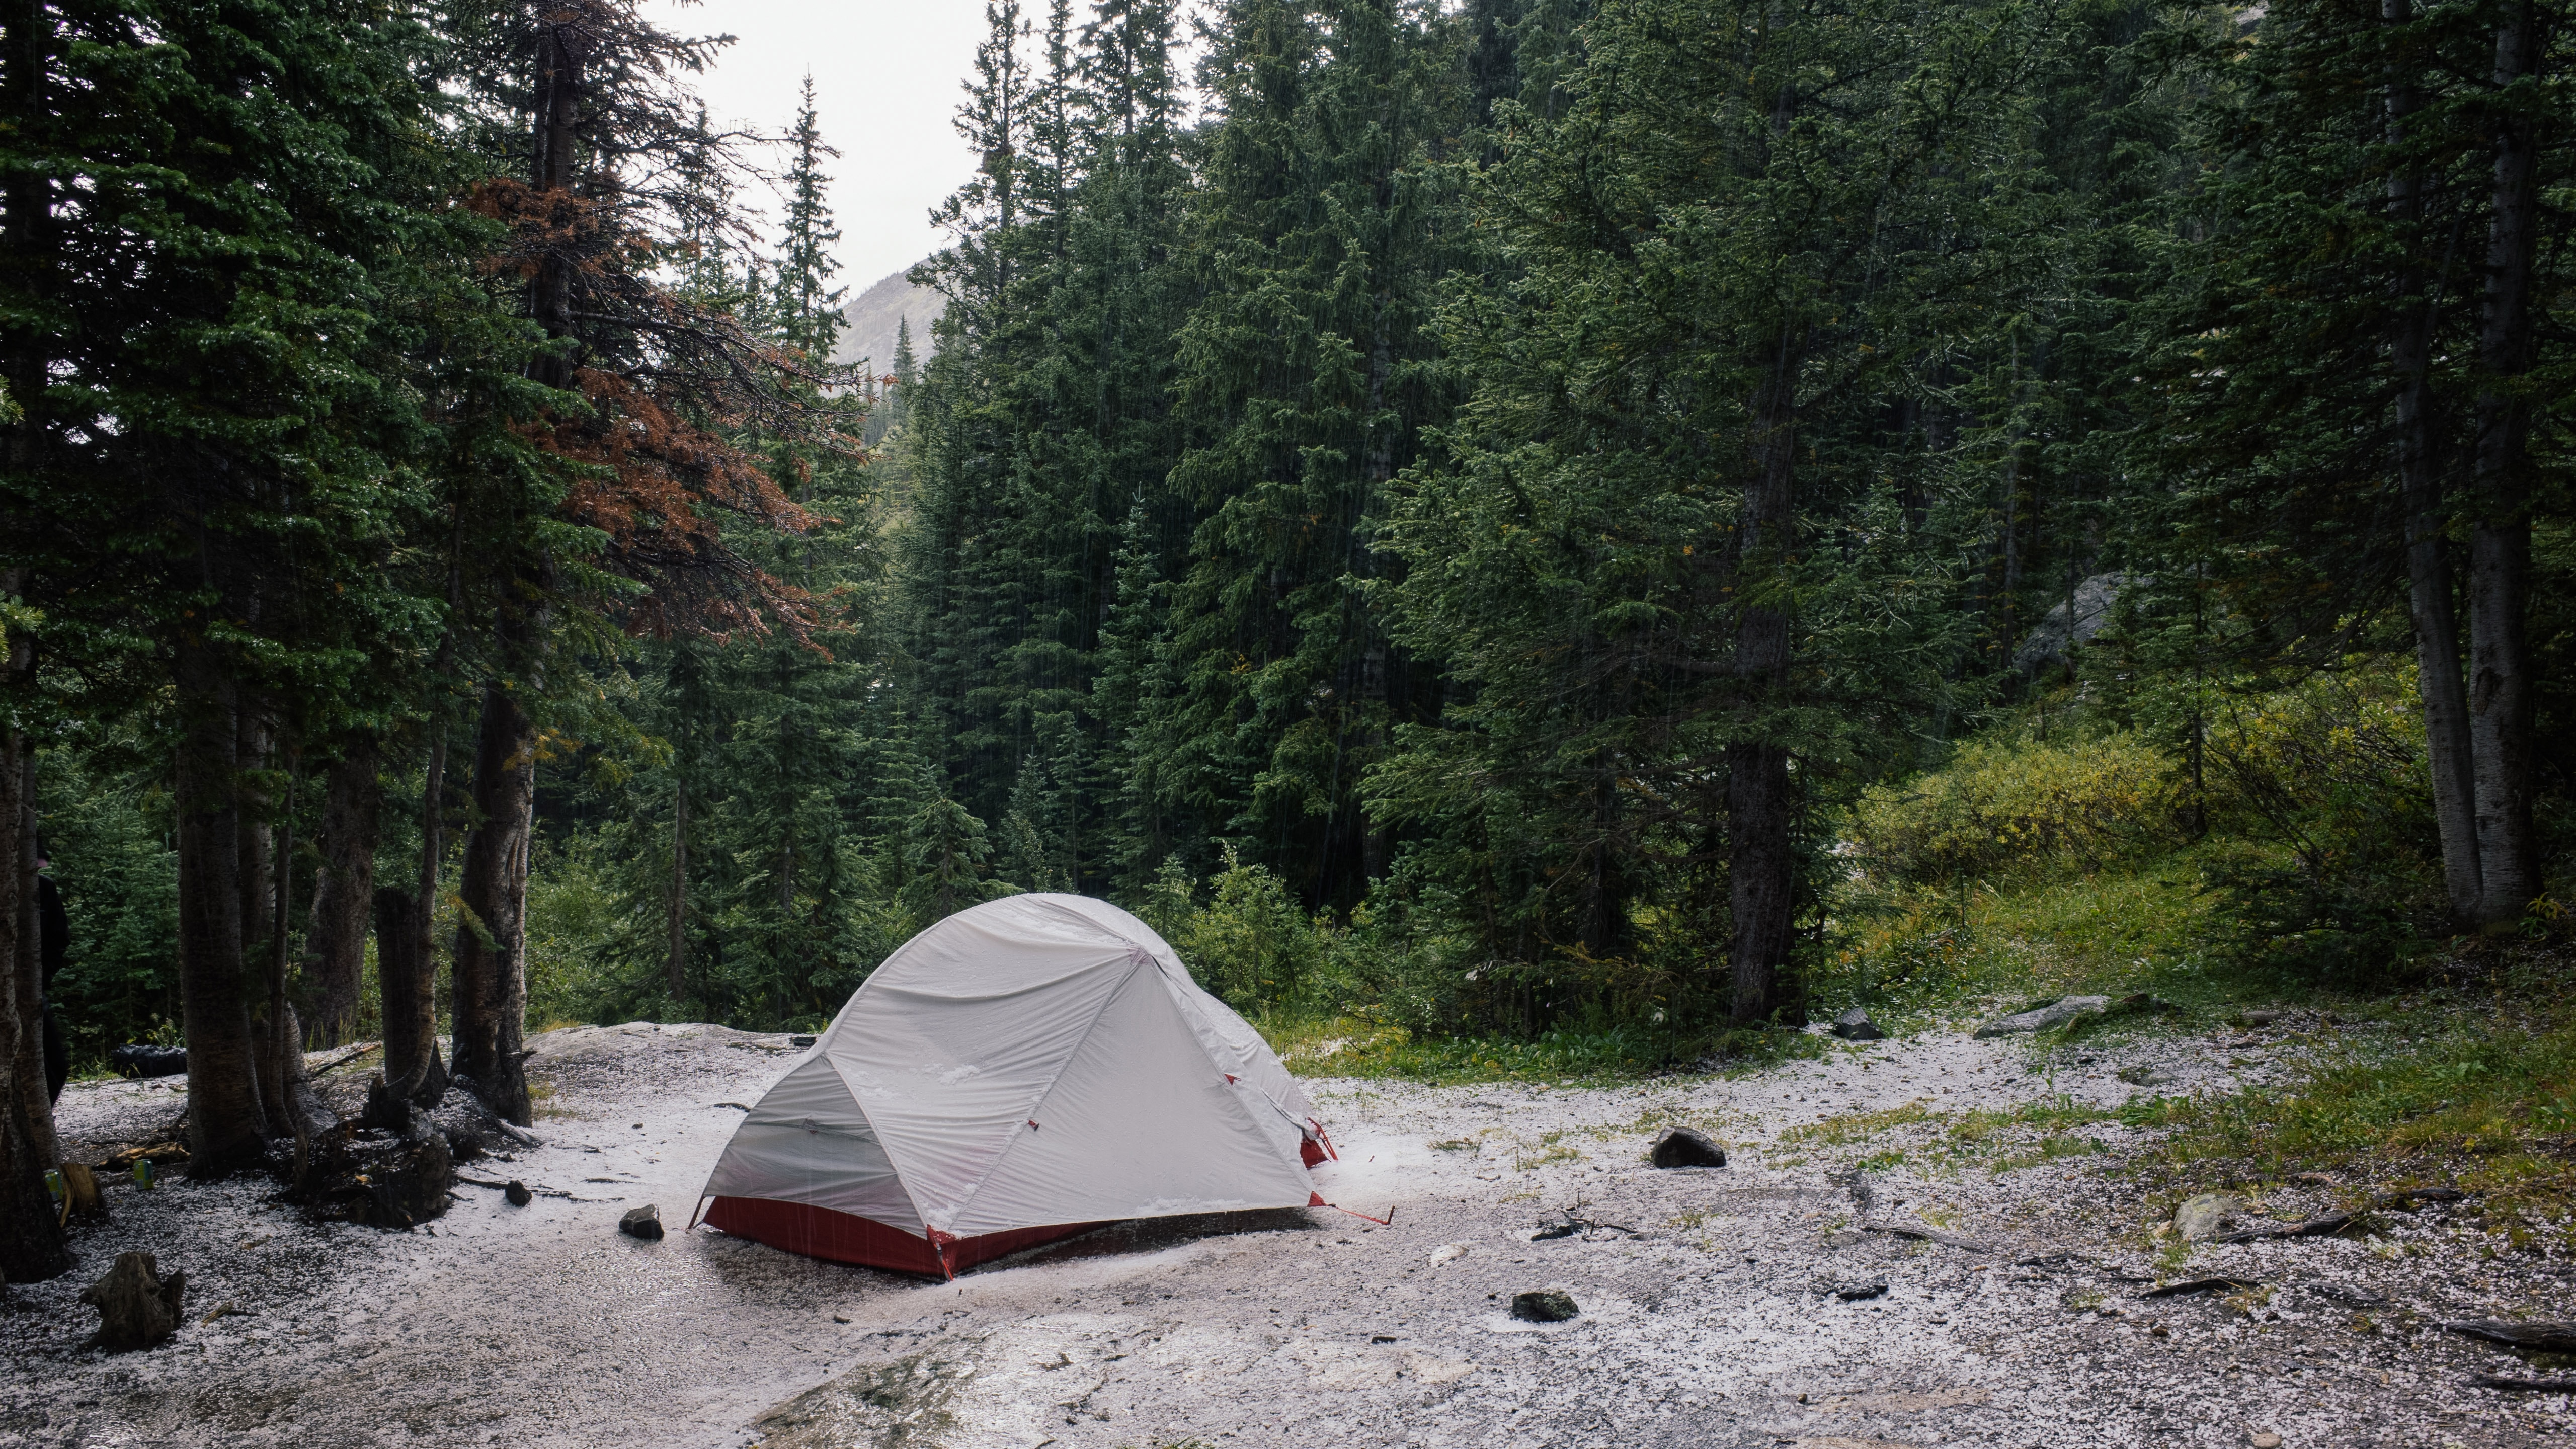 Single tent in the forest in the rain